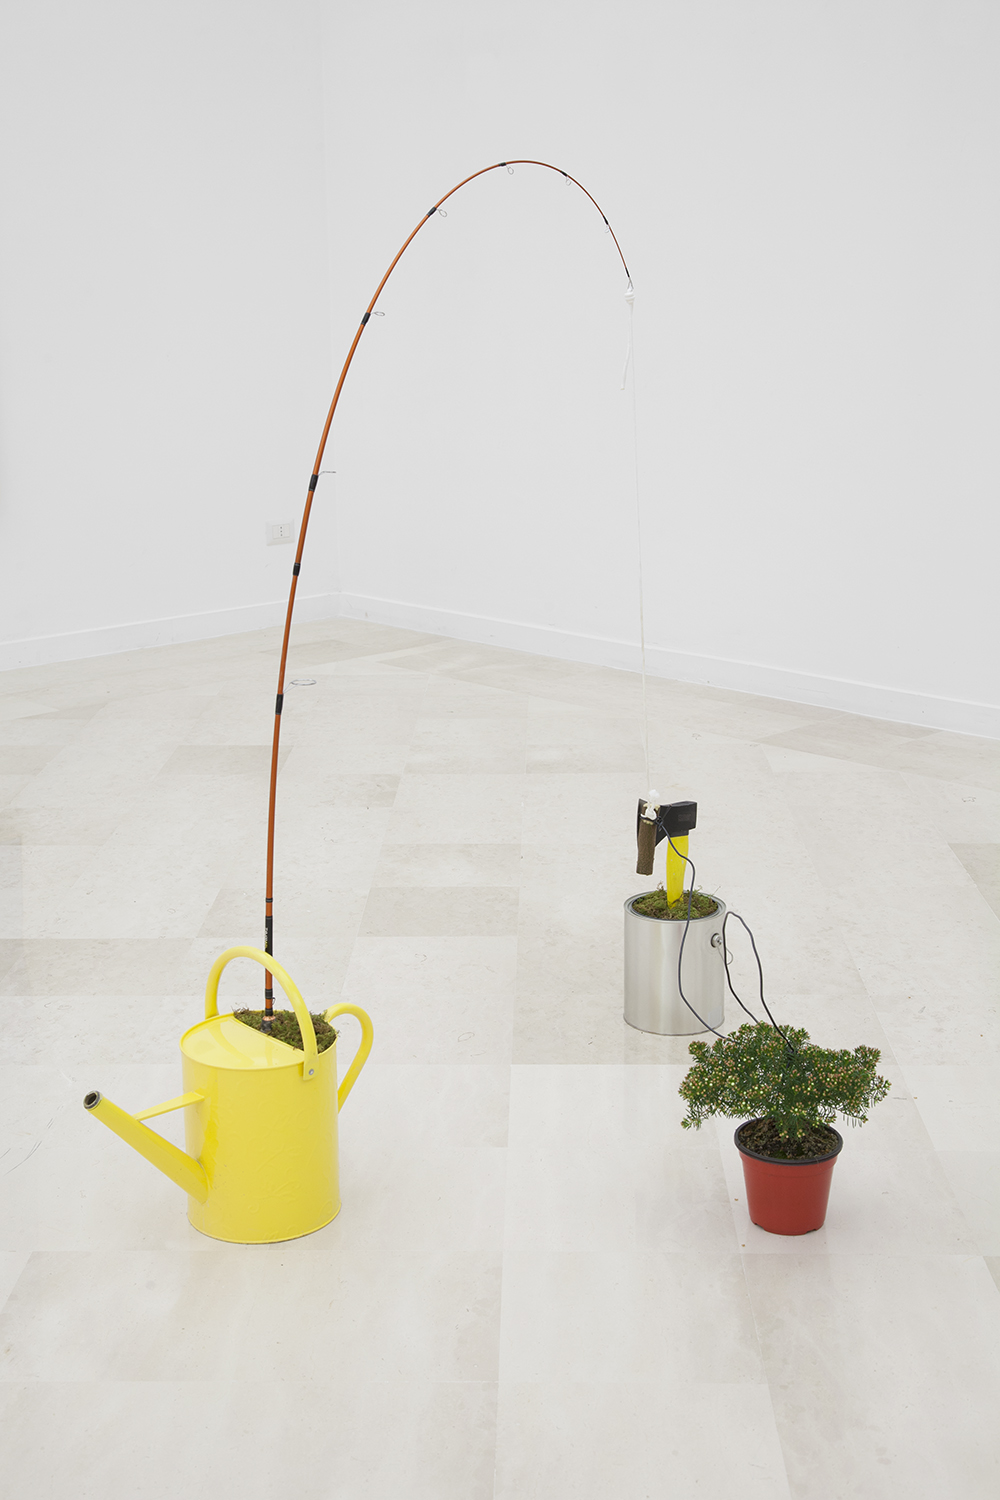 NICK DARMSTAEDTER  Devlin Adams, 2014  Fishing pole, watering pail, paint bucket, plant, hatchet, wood, moss and cord  33 x 55 x 24 inches